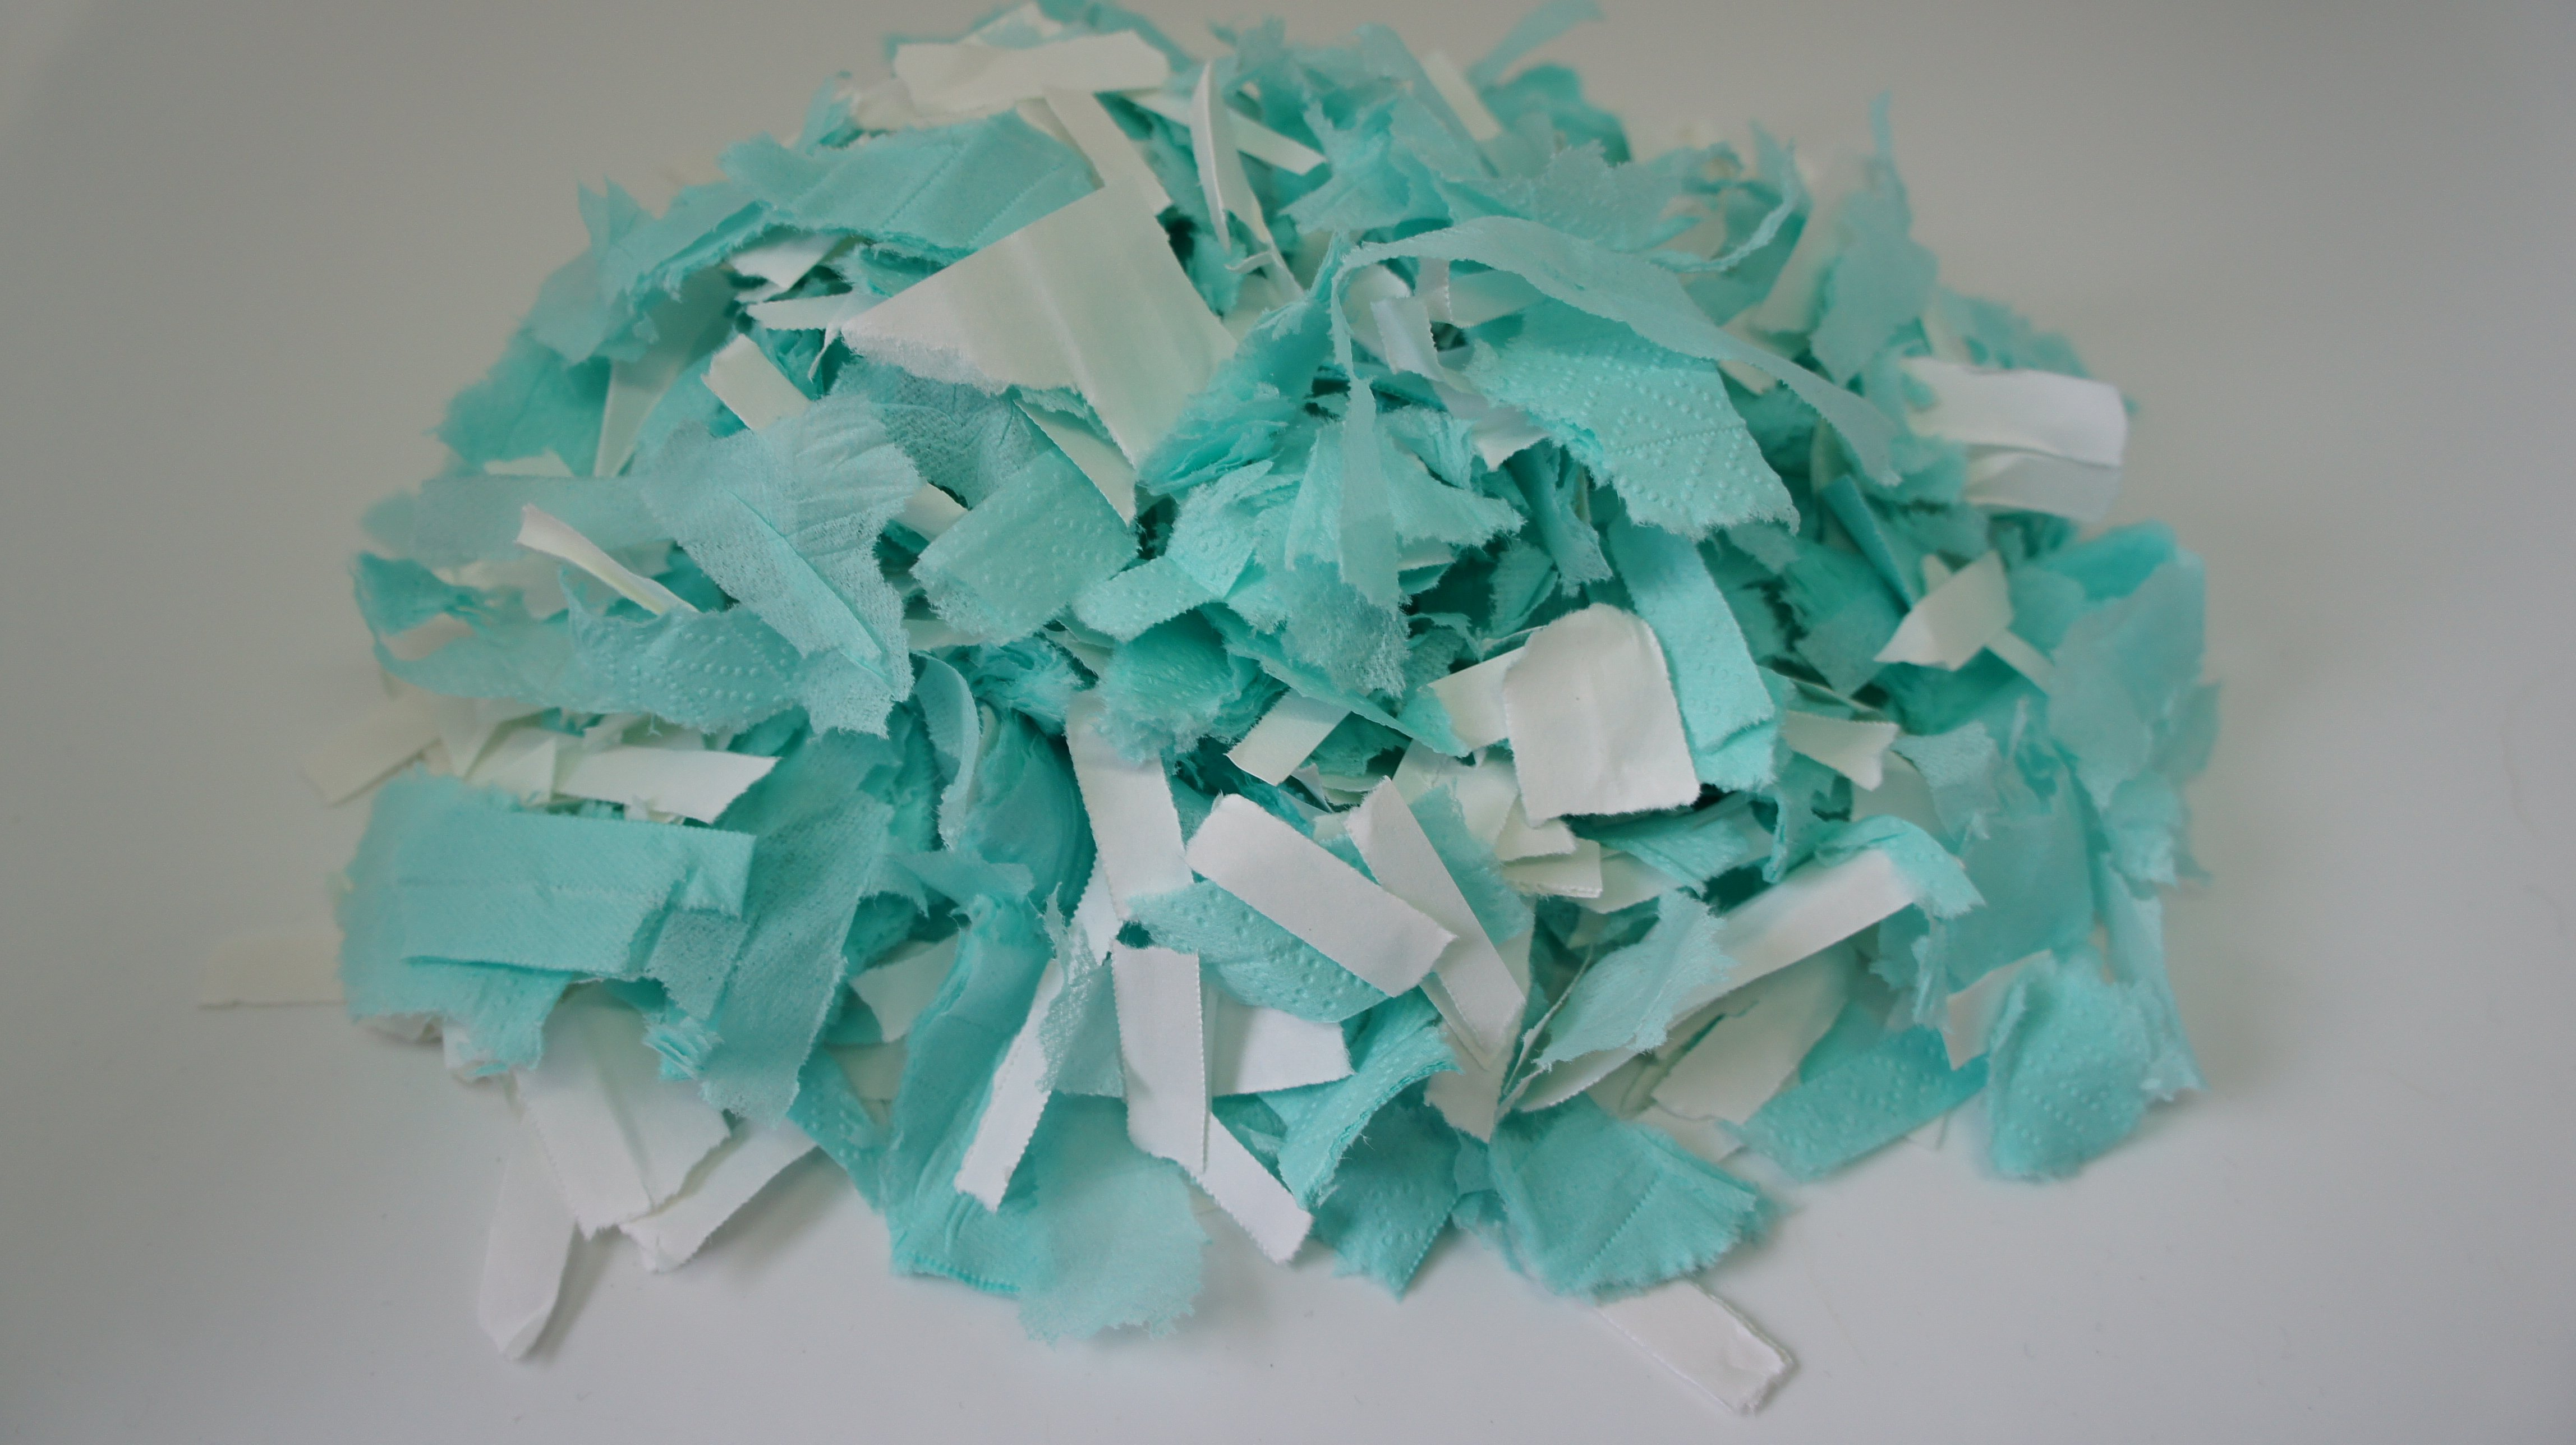 Paper ready to pulp